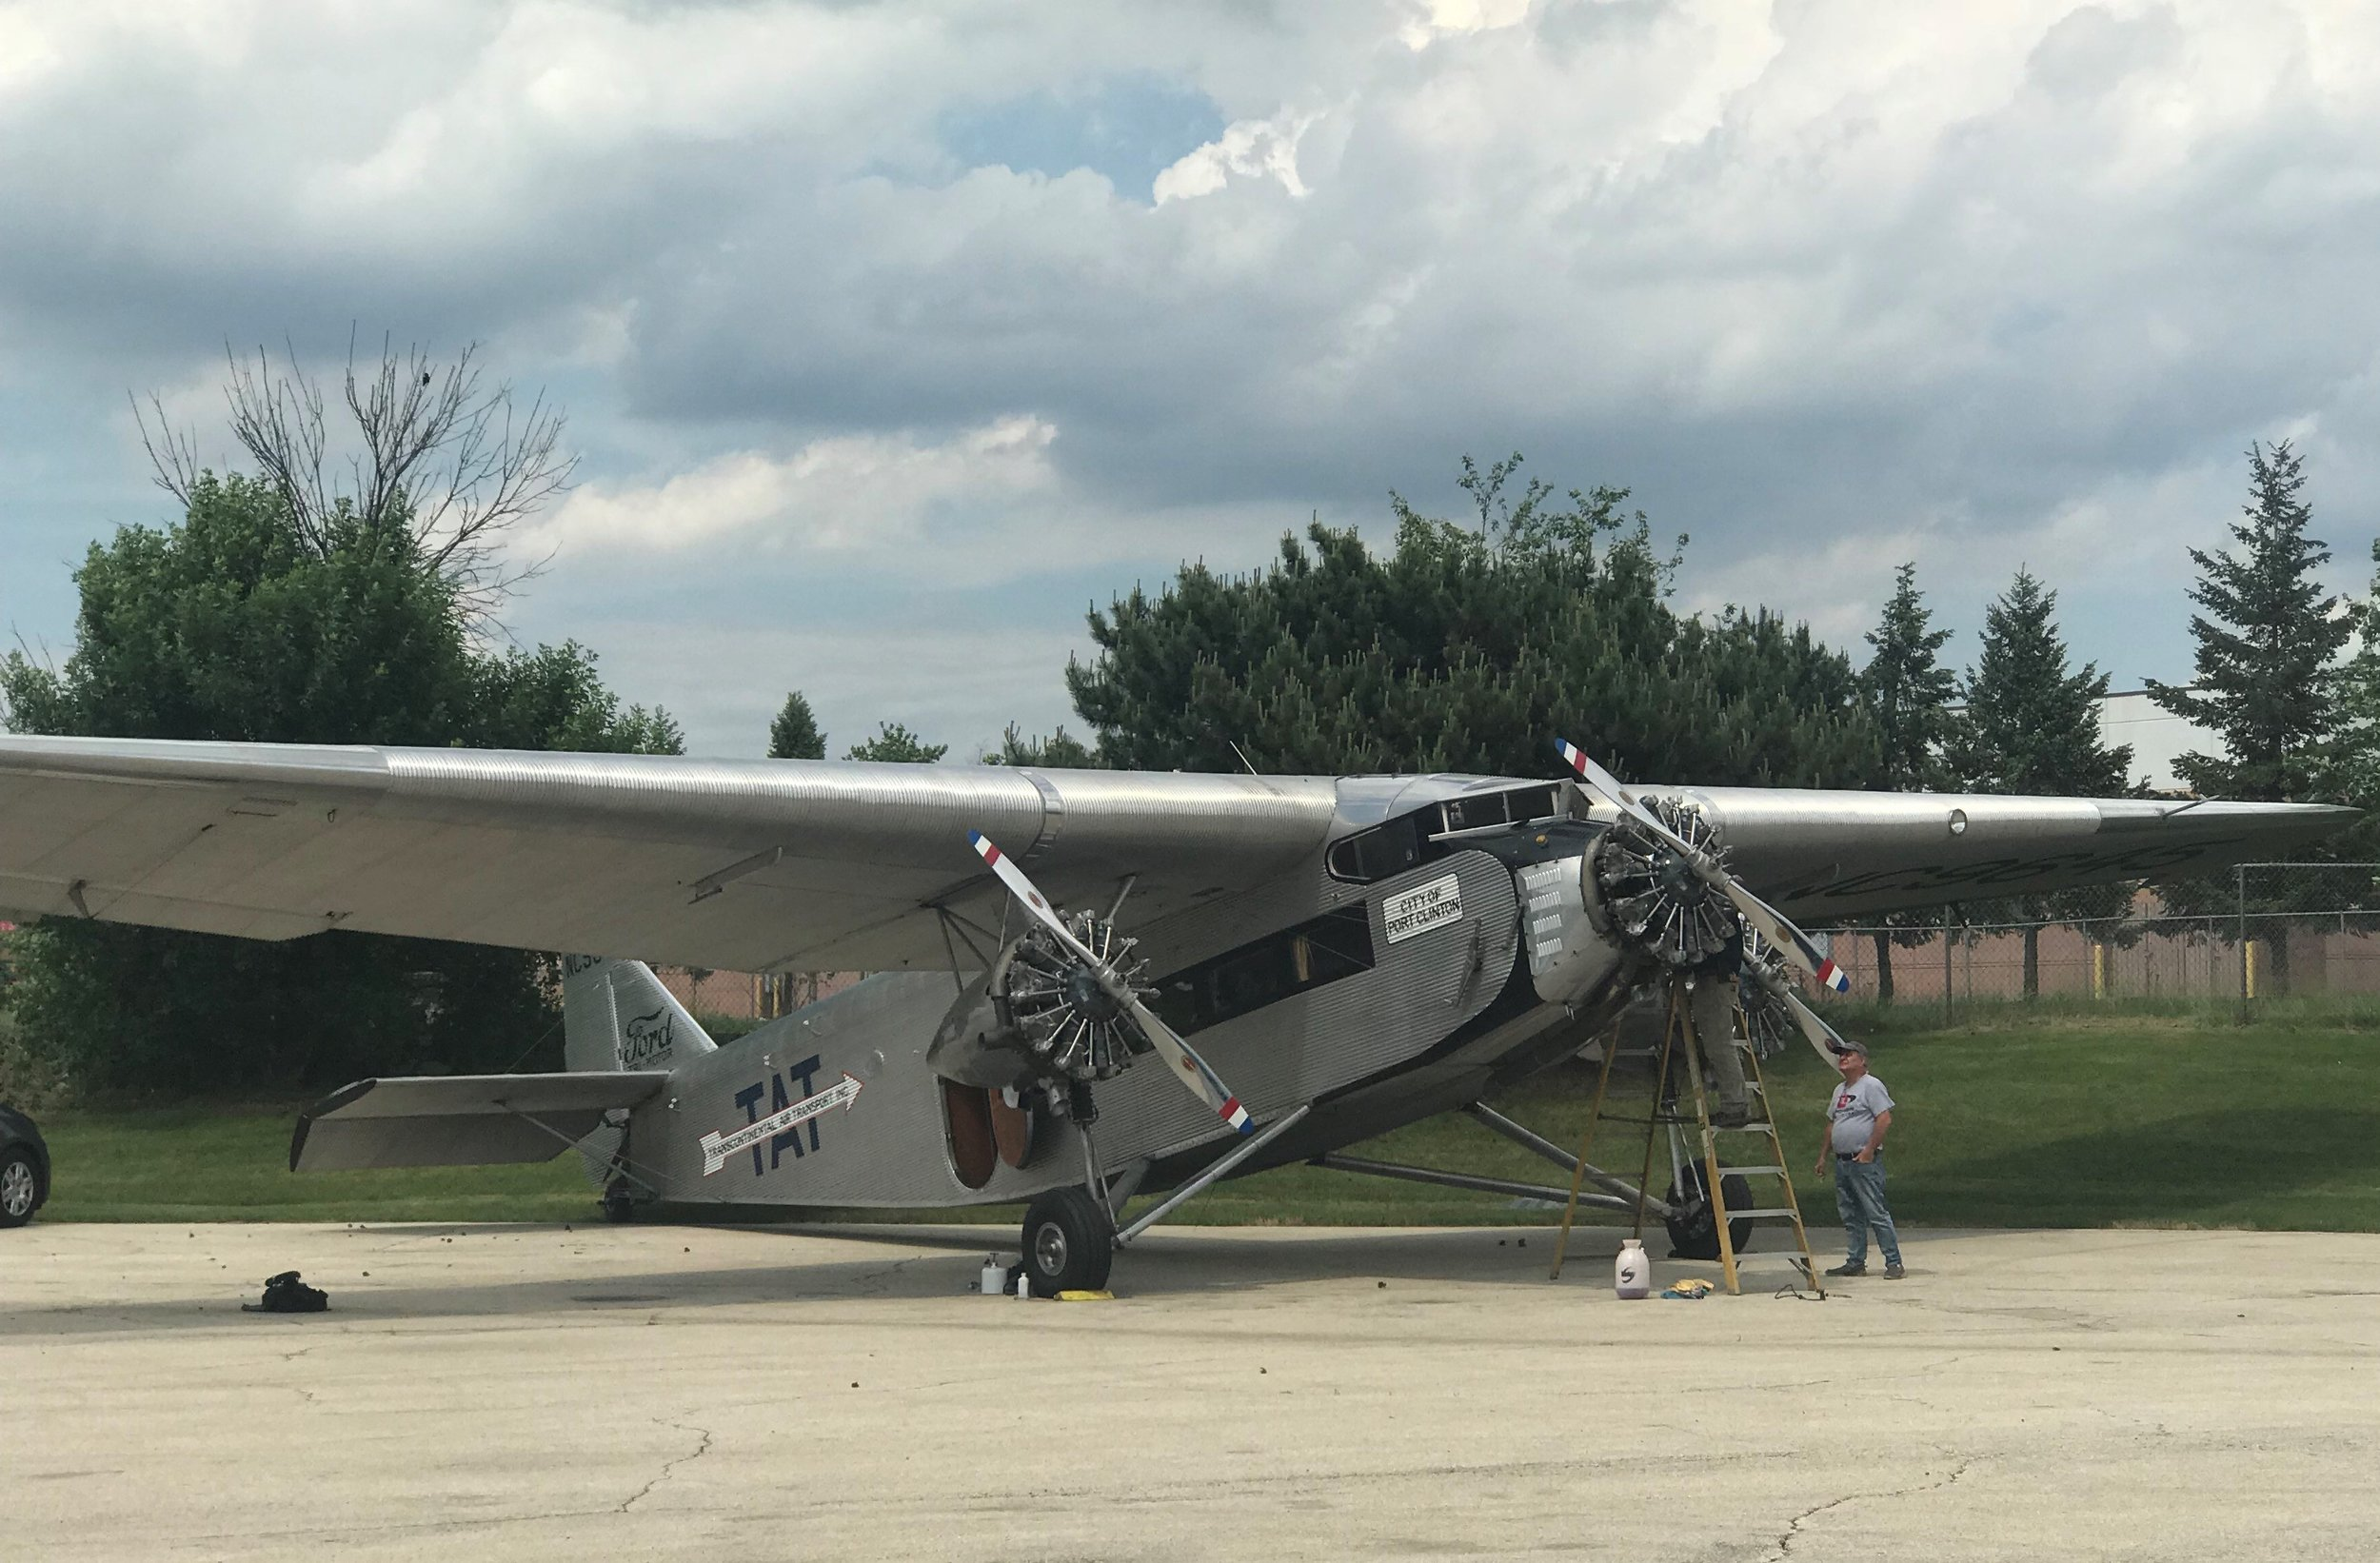 Built in 1928, the 80 year old Ford Tri-Motor is a leading attraction at the 'Cavalcade of Planes' at Bolingbrook's Clow International Airport